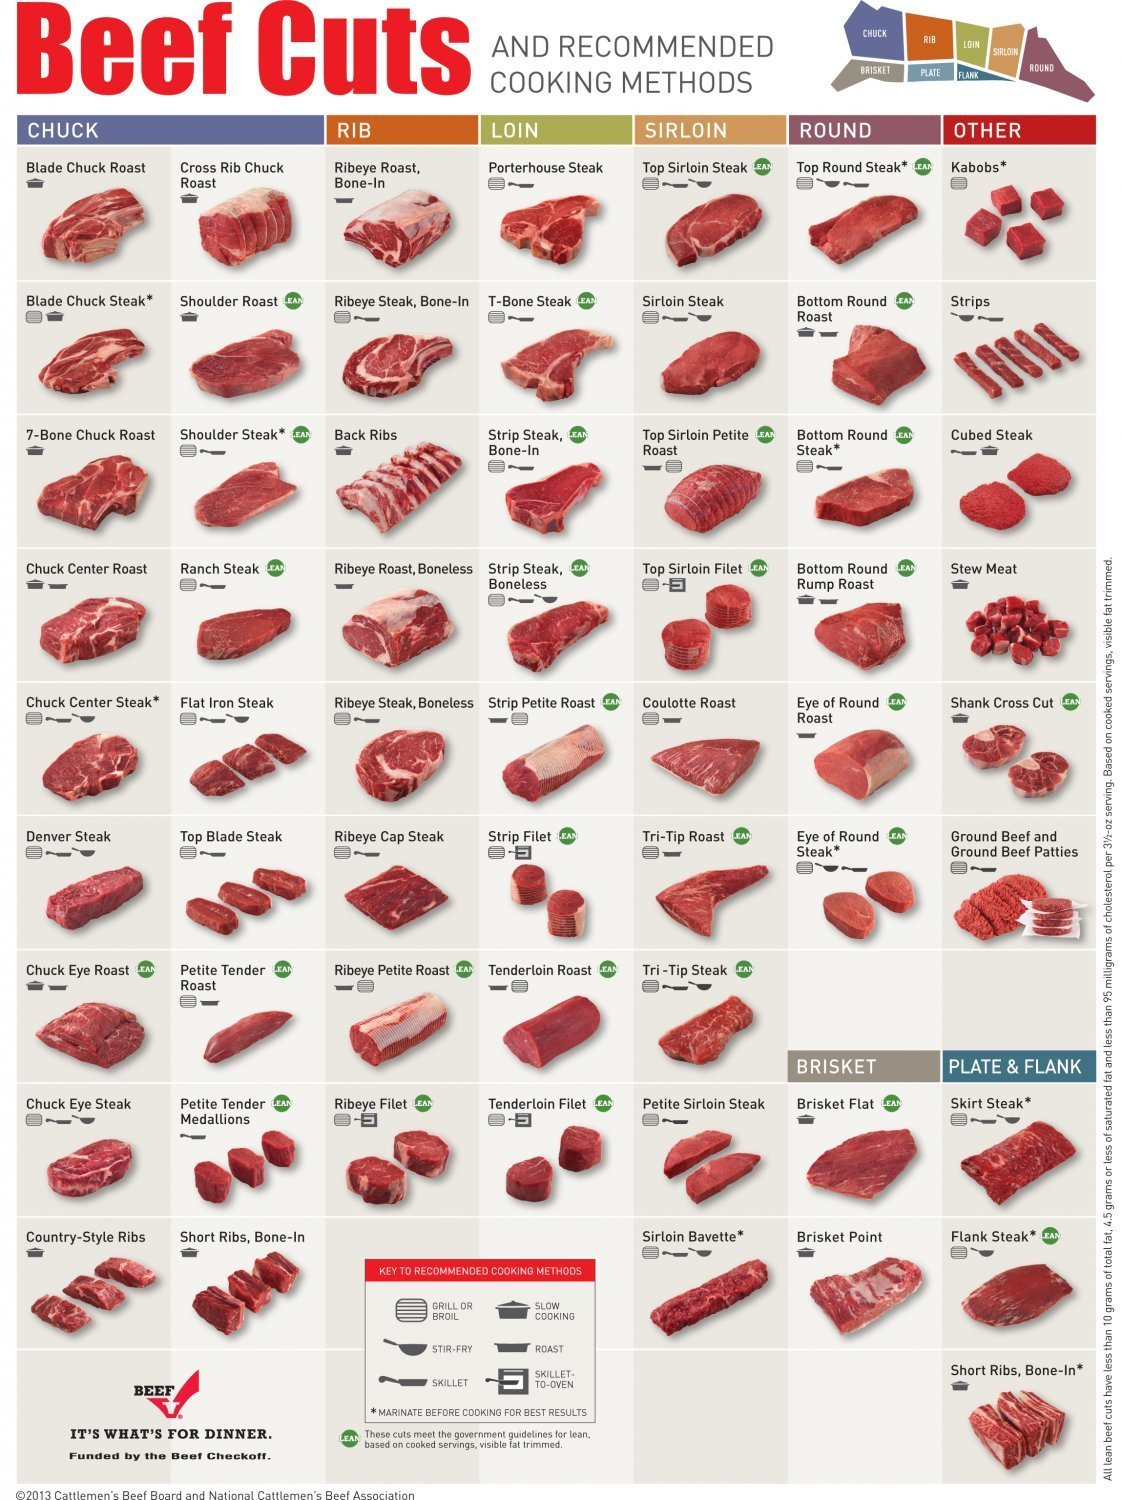 Beef Cuts Recommended Cooking Methods Chart  24x35 inches Canvas Print